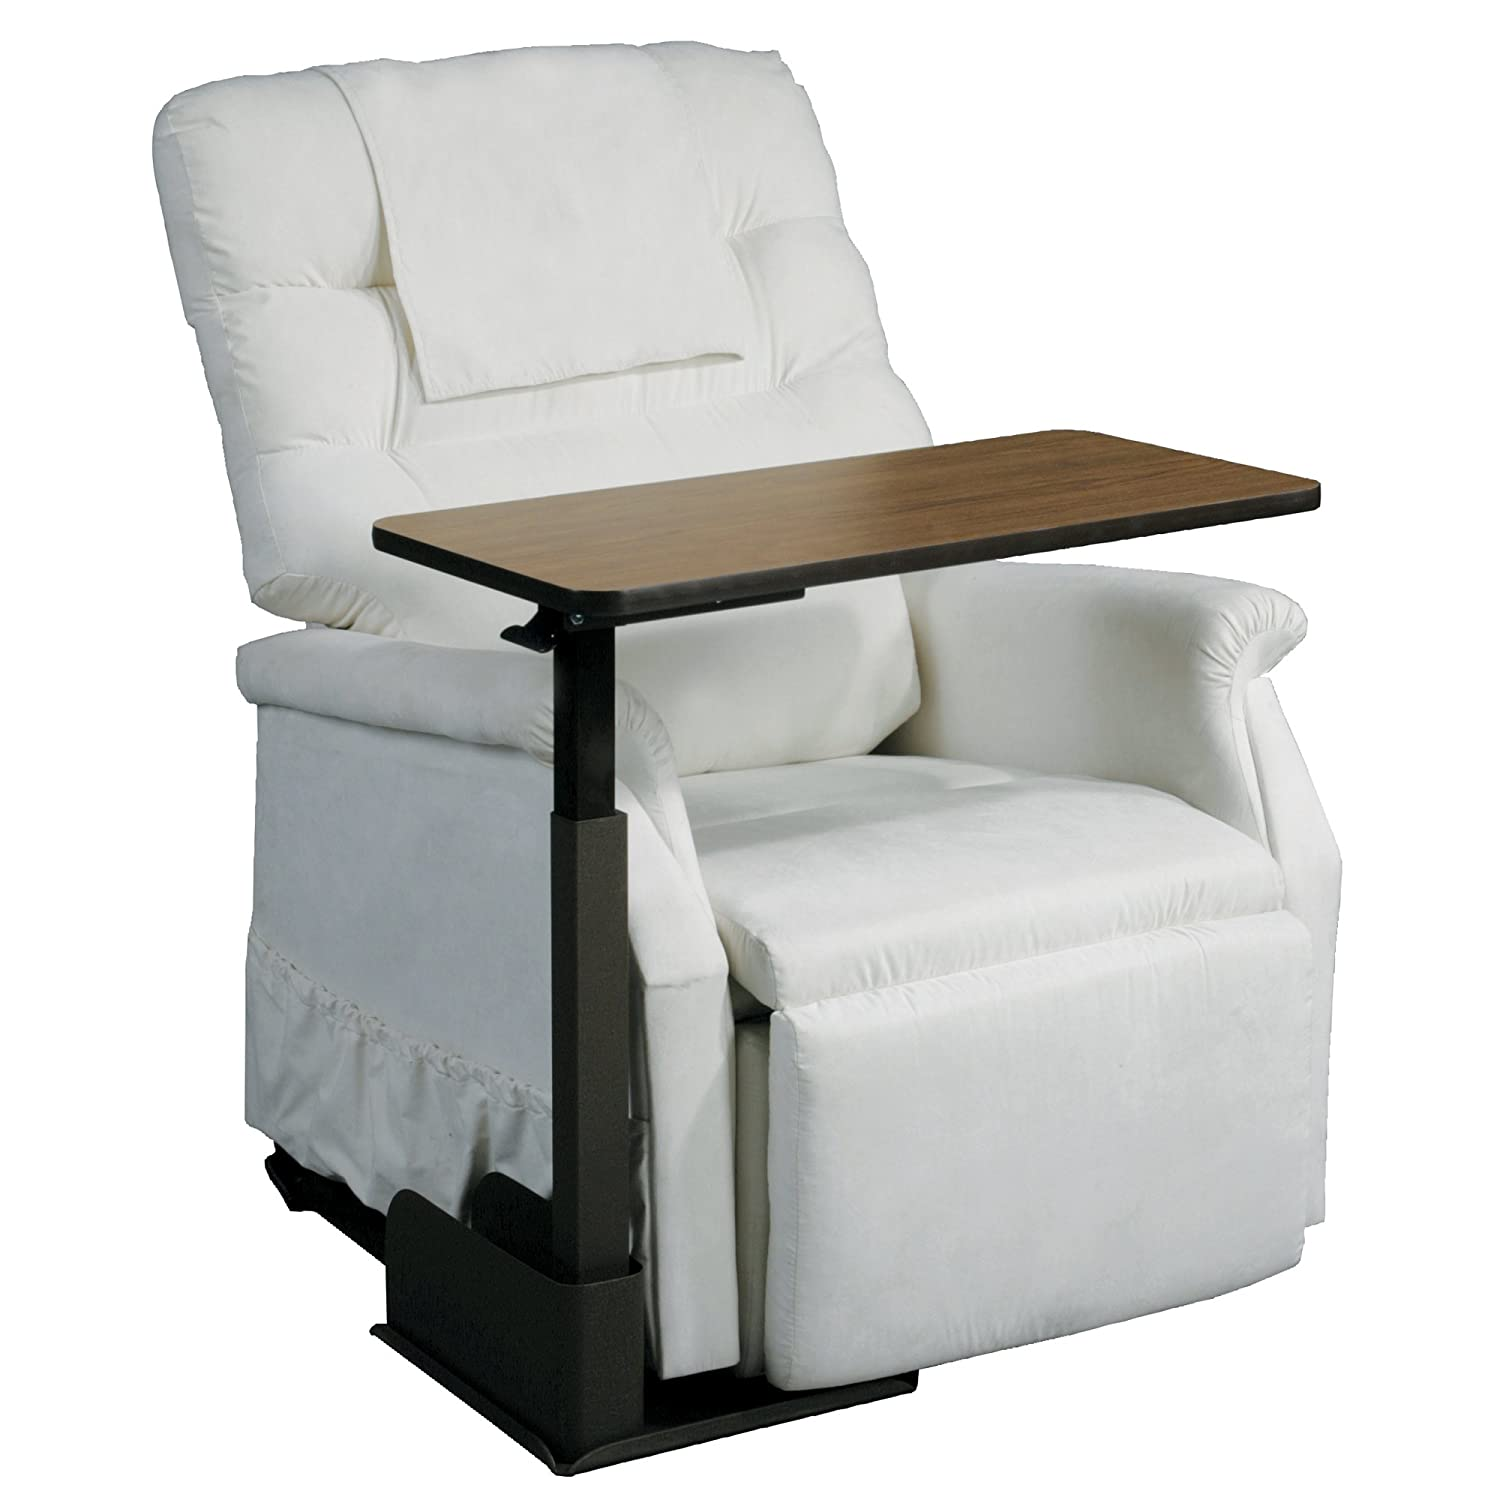 Amazon Drive Medical Deluxe Seat Lift Chair Overbed Table